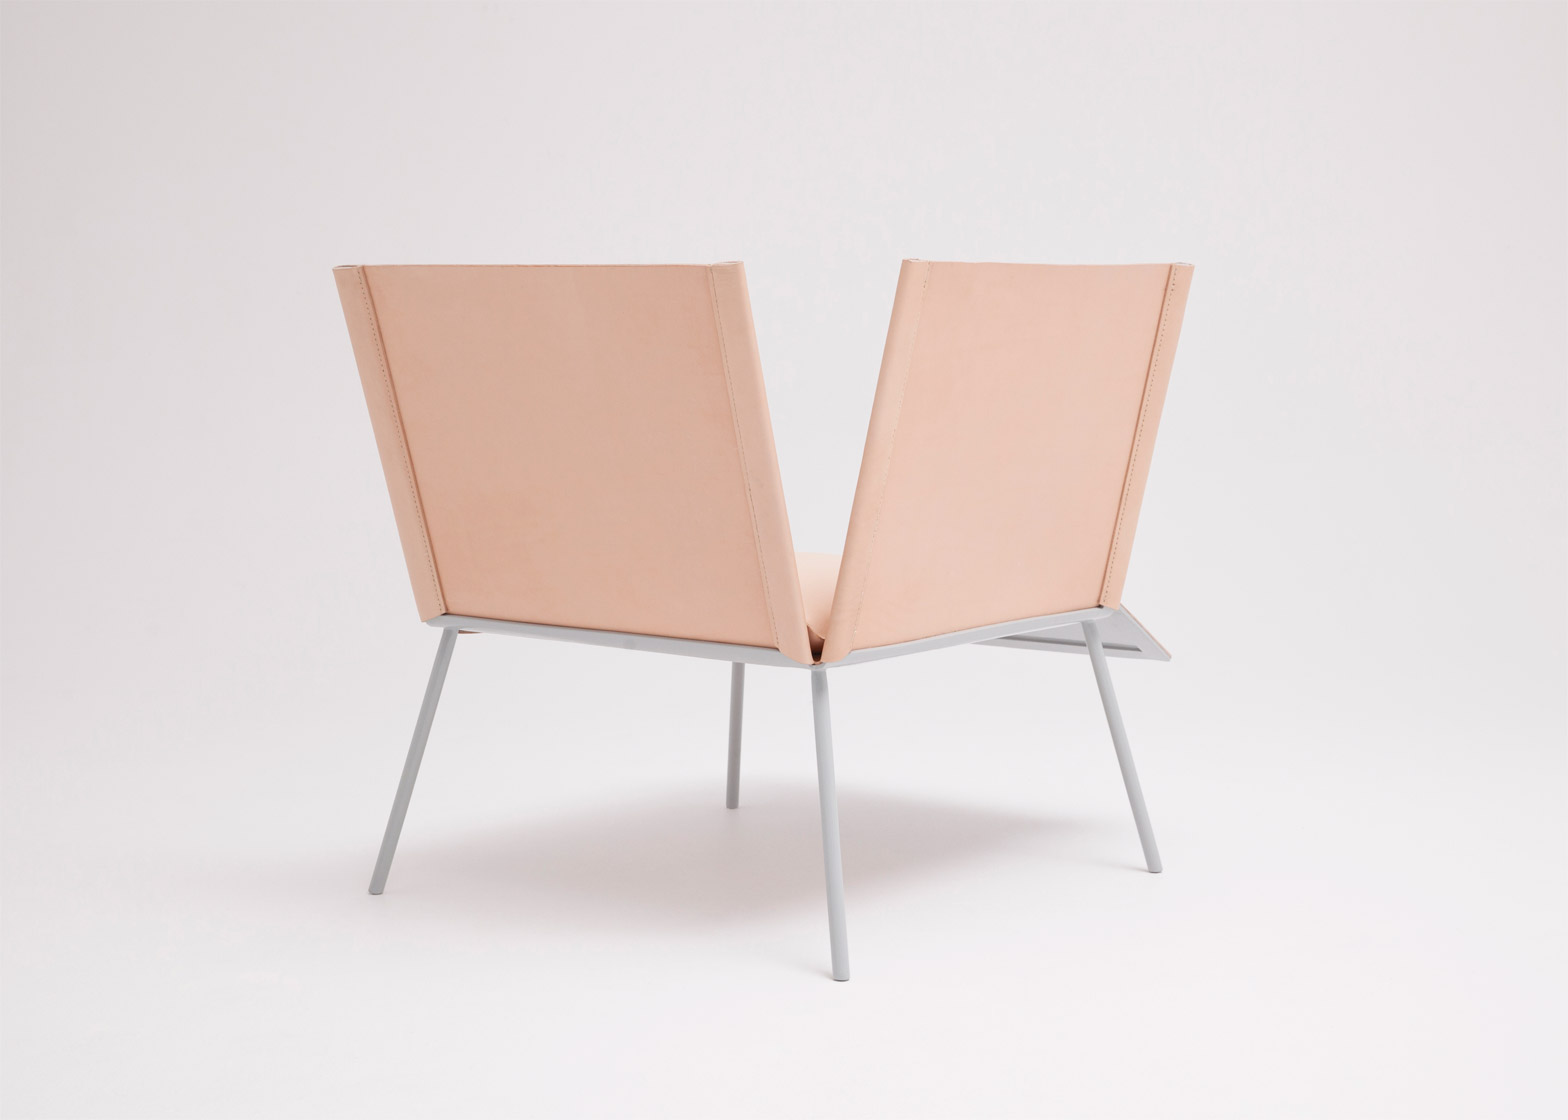 Stockholm Furniture Fair collection by Thom Fougere